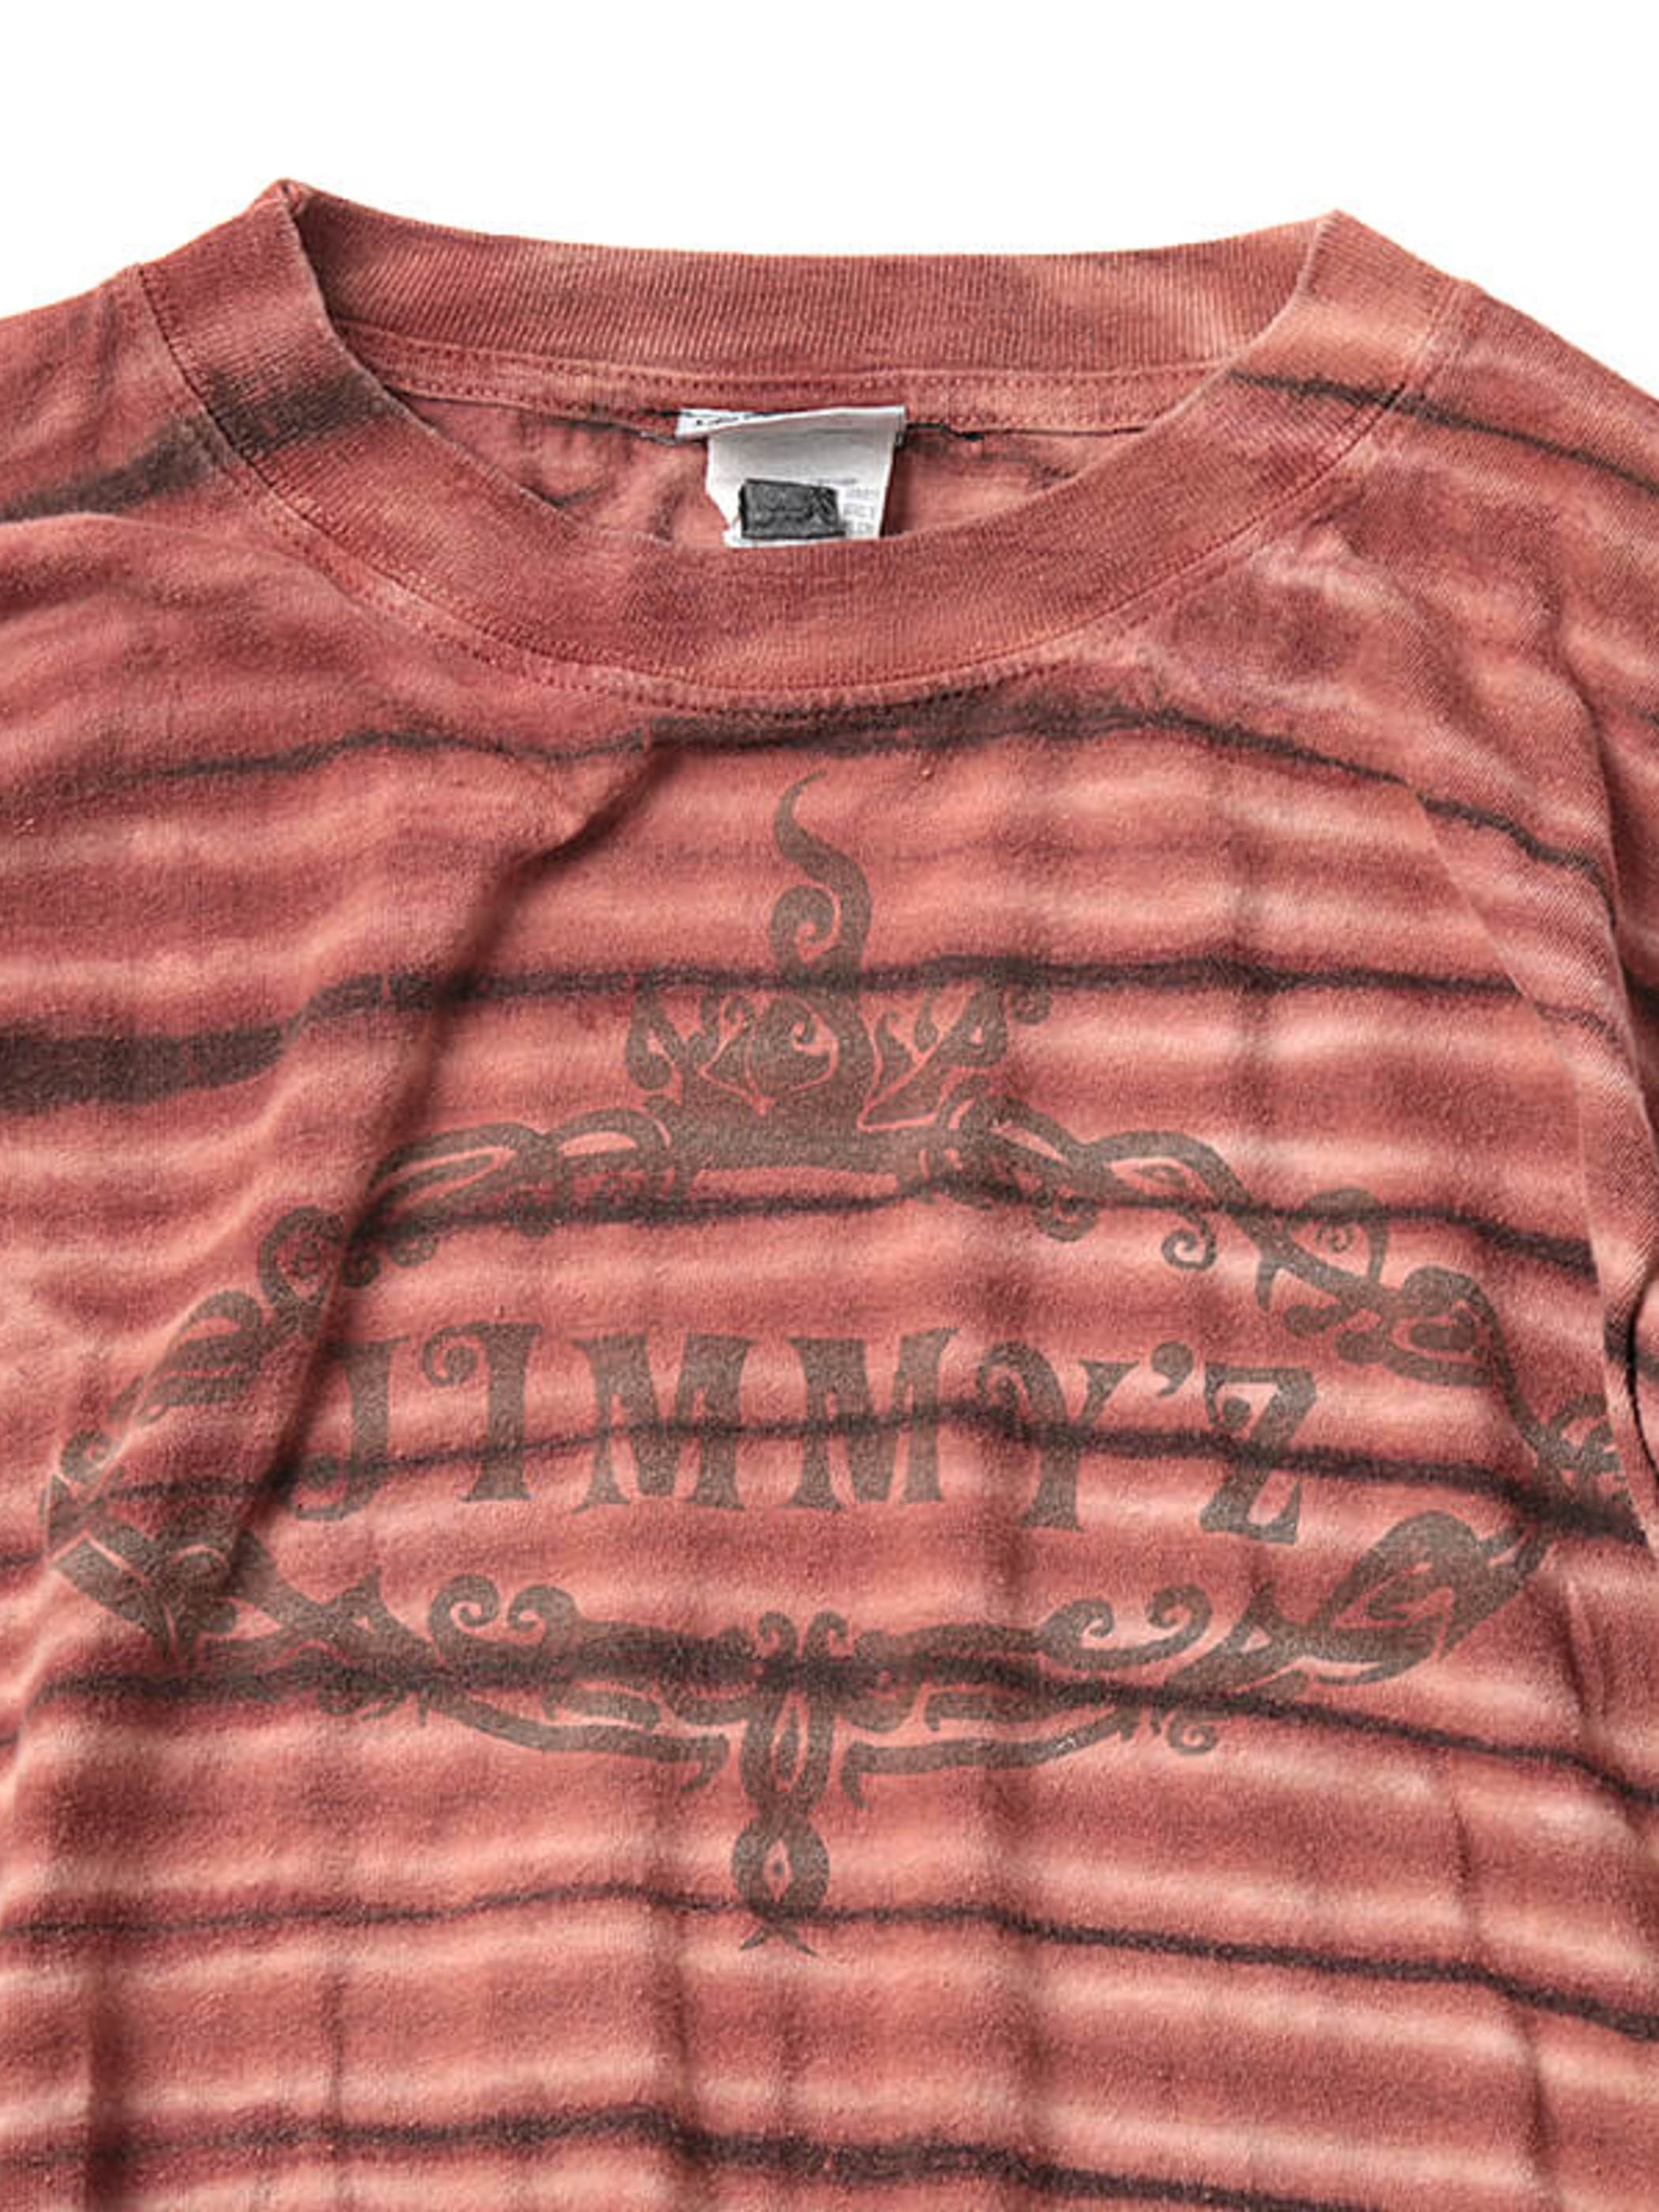 Used / Jimmy's / 1980's Vintage / T-shirt